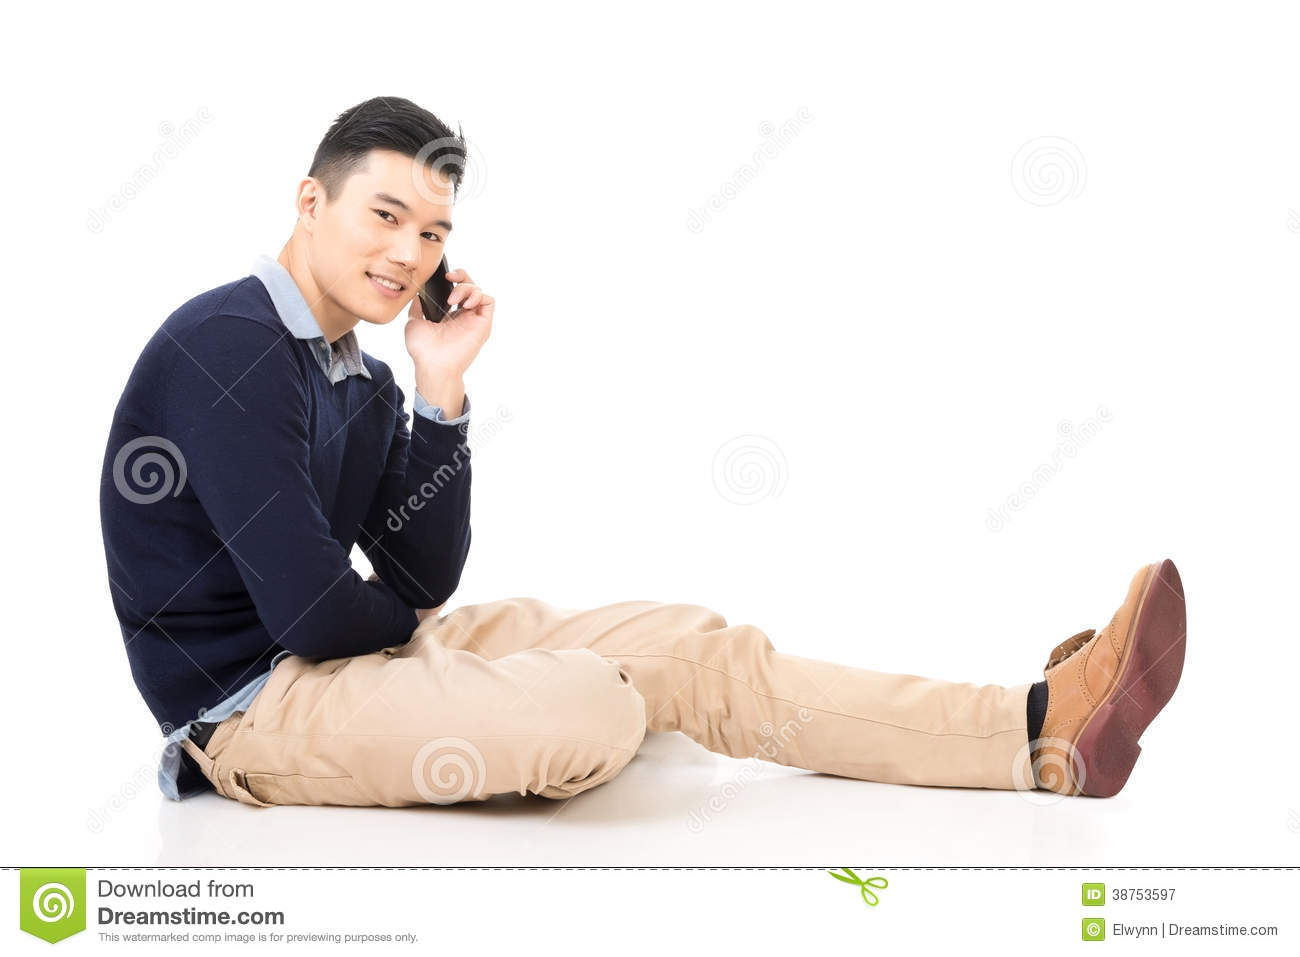 How to sit in contact